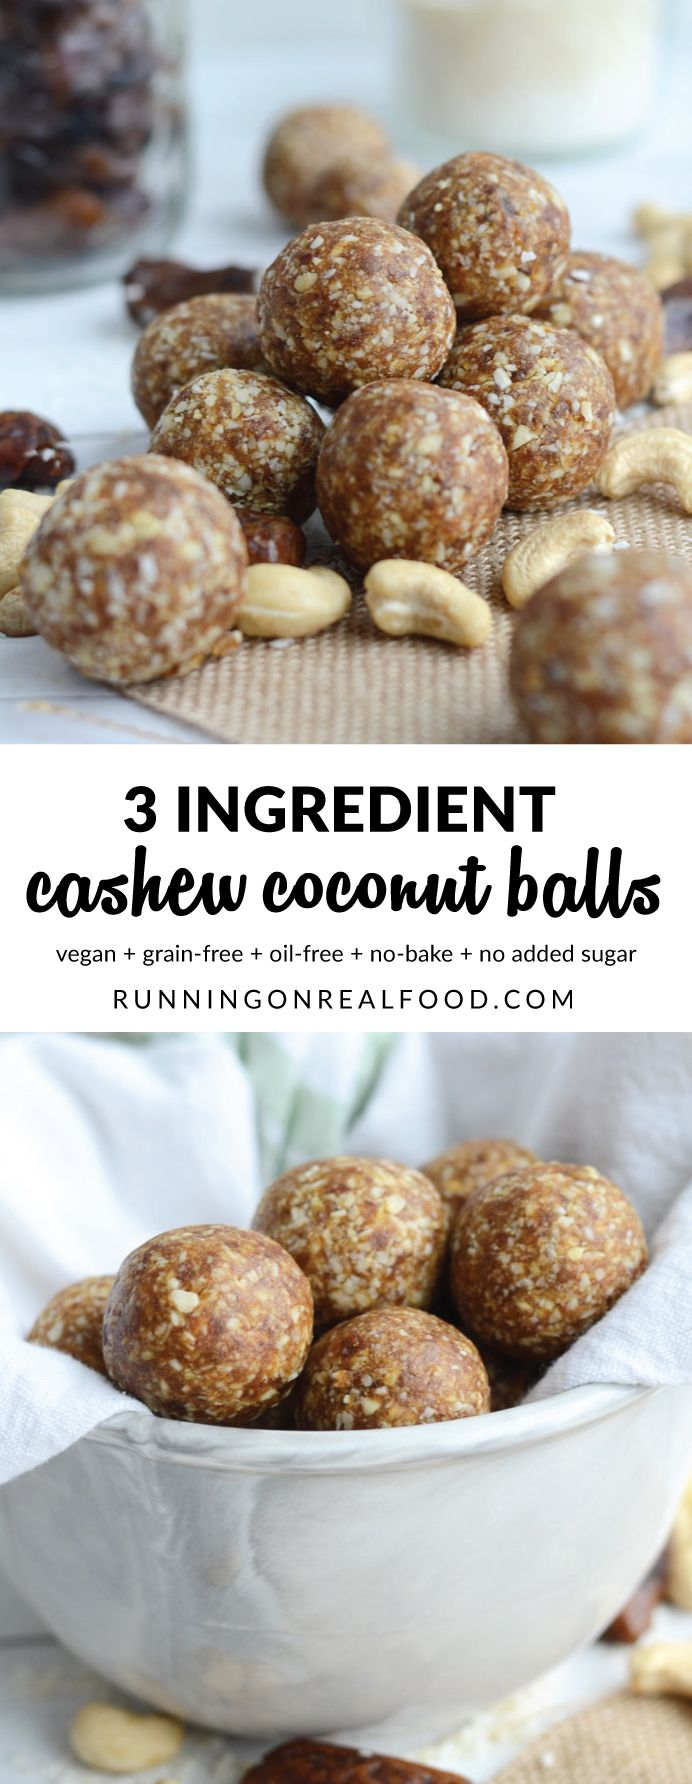 All you need is 3 wholesome ingredients and a few minutes to whip up these raw vegan cashew coconut balls! Vegan, grain-free, oil-free, no added sugar. Great for breakfast, snacking, dessert or as a pre-workout energy boost!  Raw Vegan Cashew Coconut Balls http://runningonrealfood.com/cashew-coconut-balls/